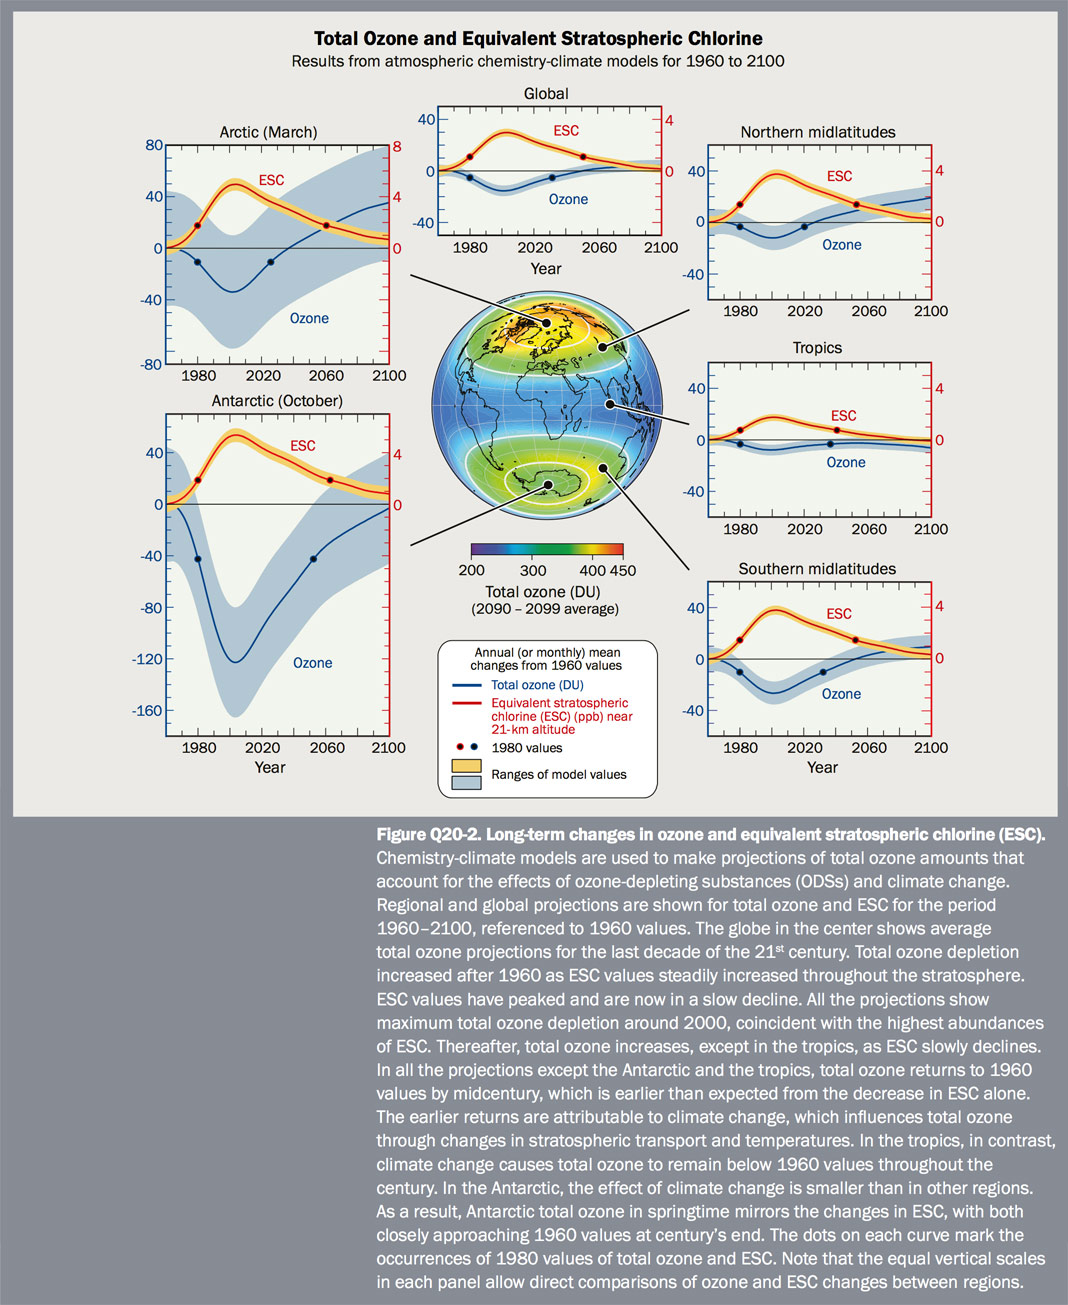 Figure Q20-2 Long-term changes in ozone and equivalent stratospheric chlorine (ESC)